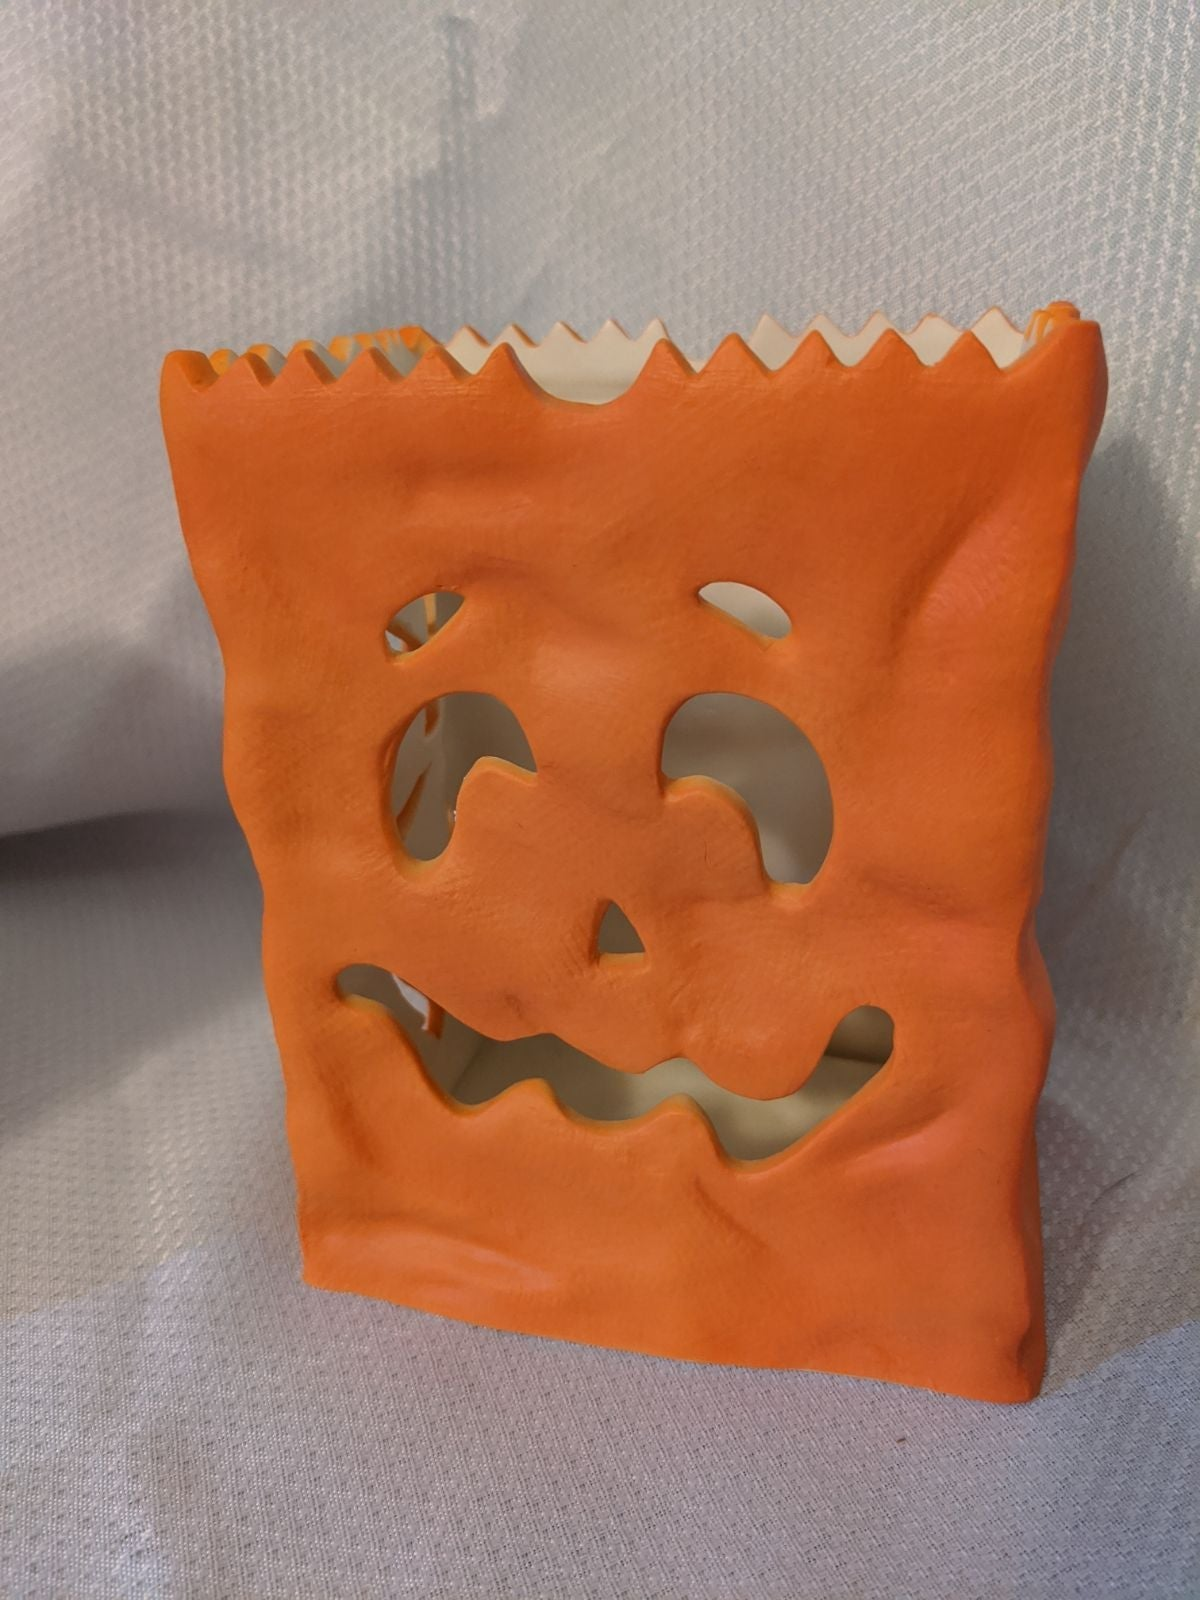 partylite Halloween pumpkin luminary